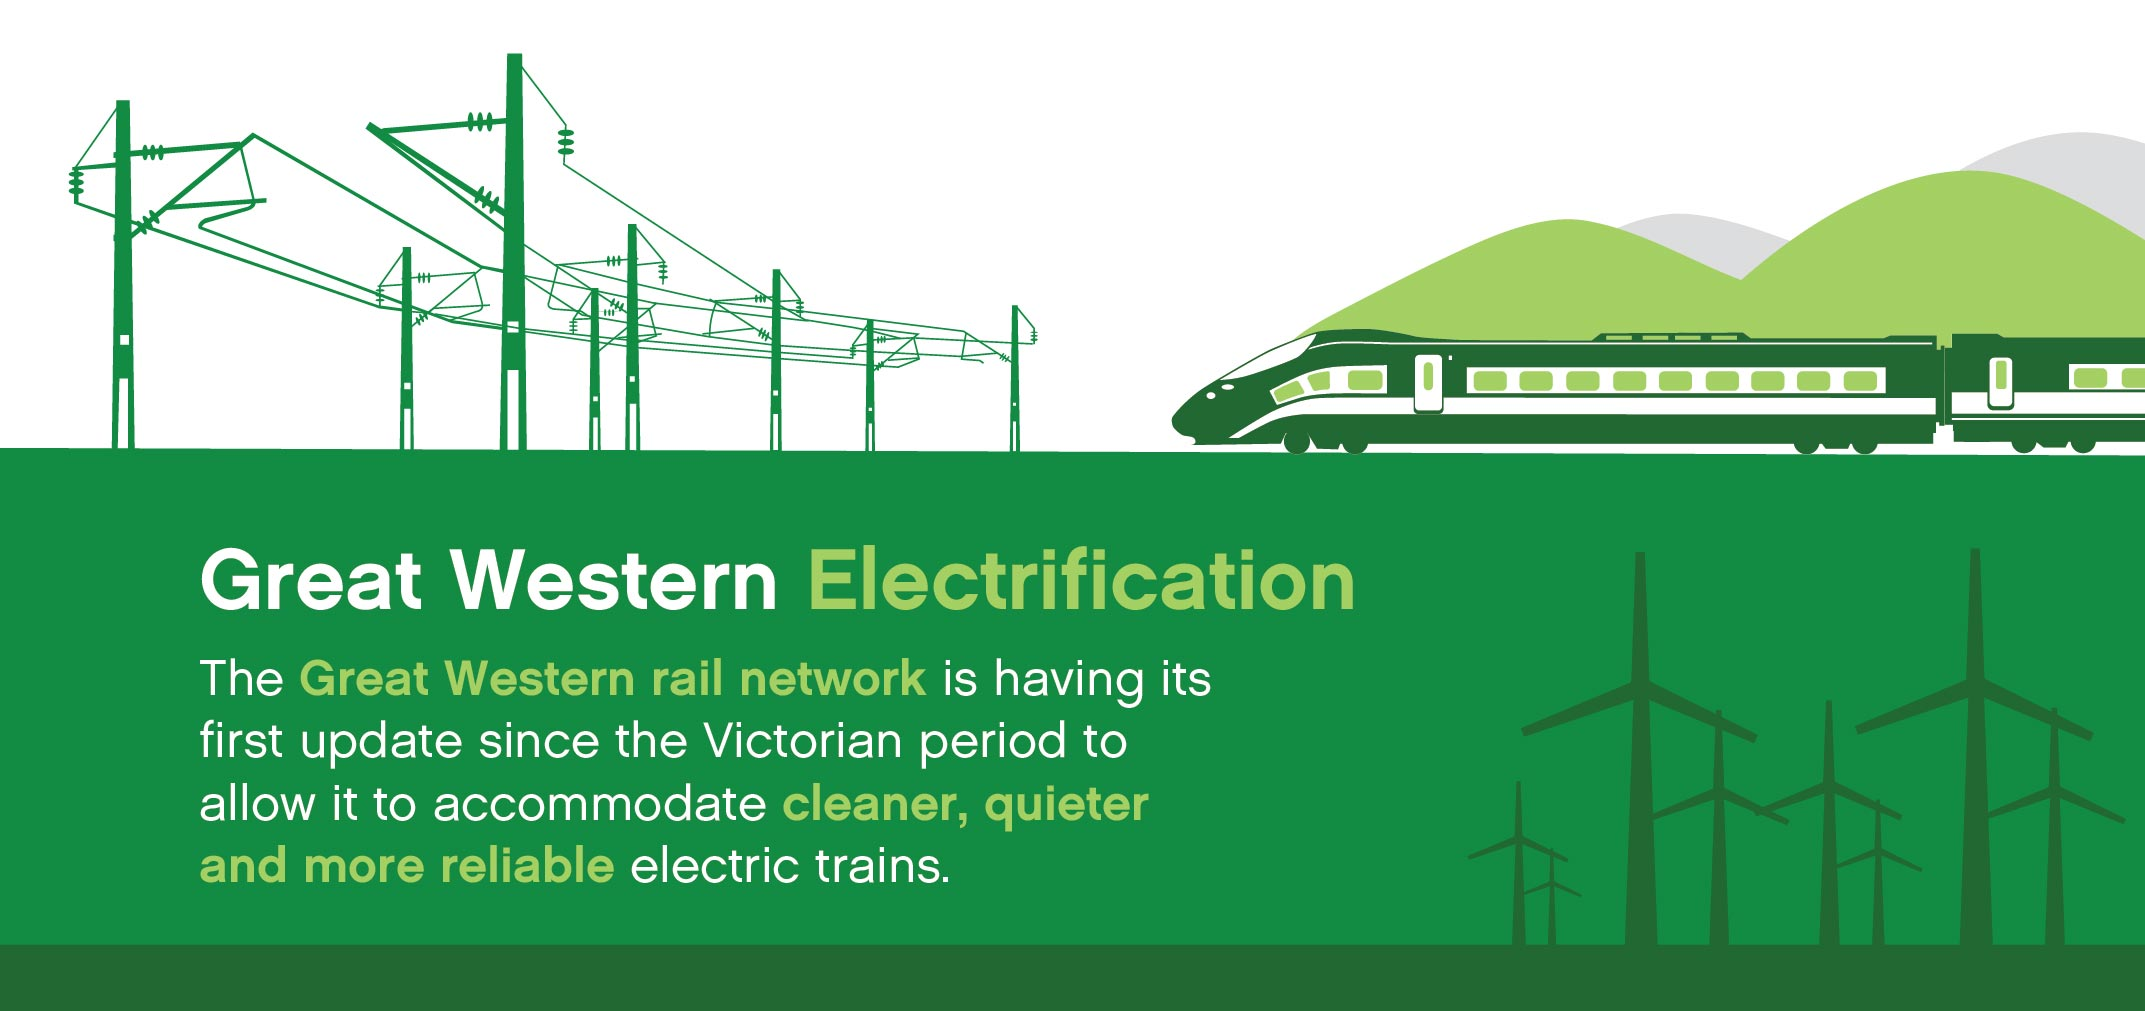 Great Western Electrification - image